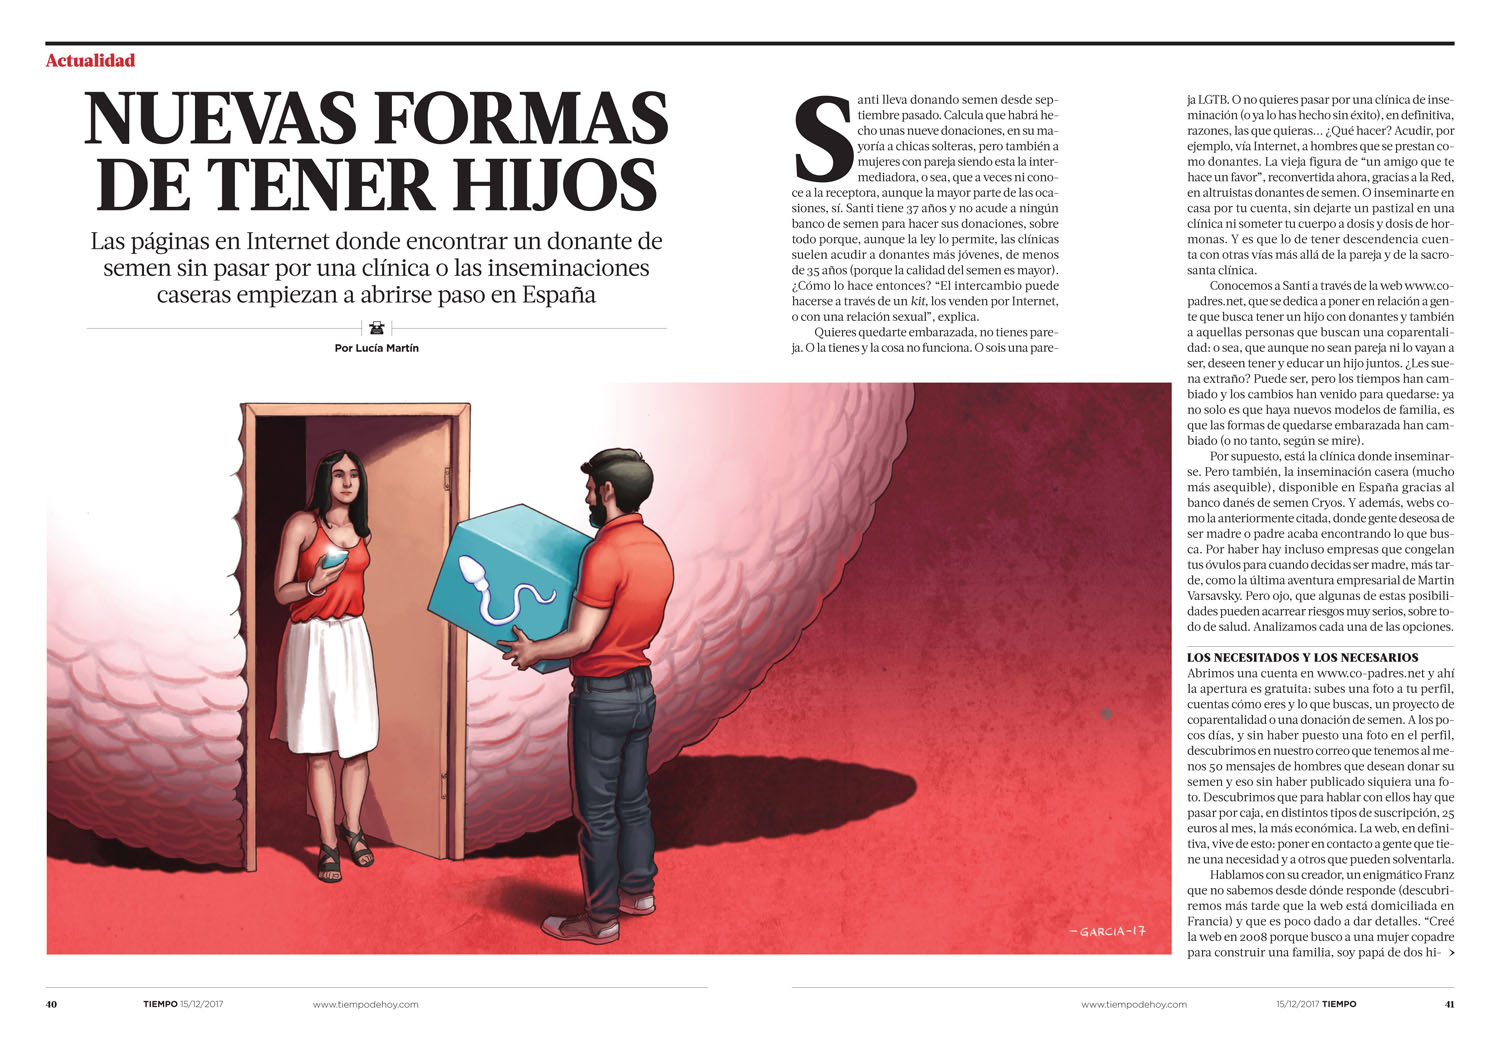 Daniel Garcia Art Illustration Ilustracion Editorial Tiempo Hijos Children Home Artificial Isemination Egg Sperm Man Woman Baby Pregancy 2